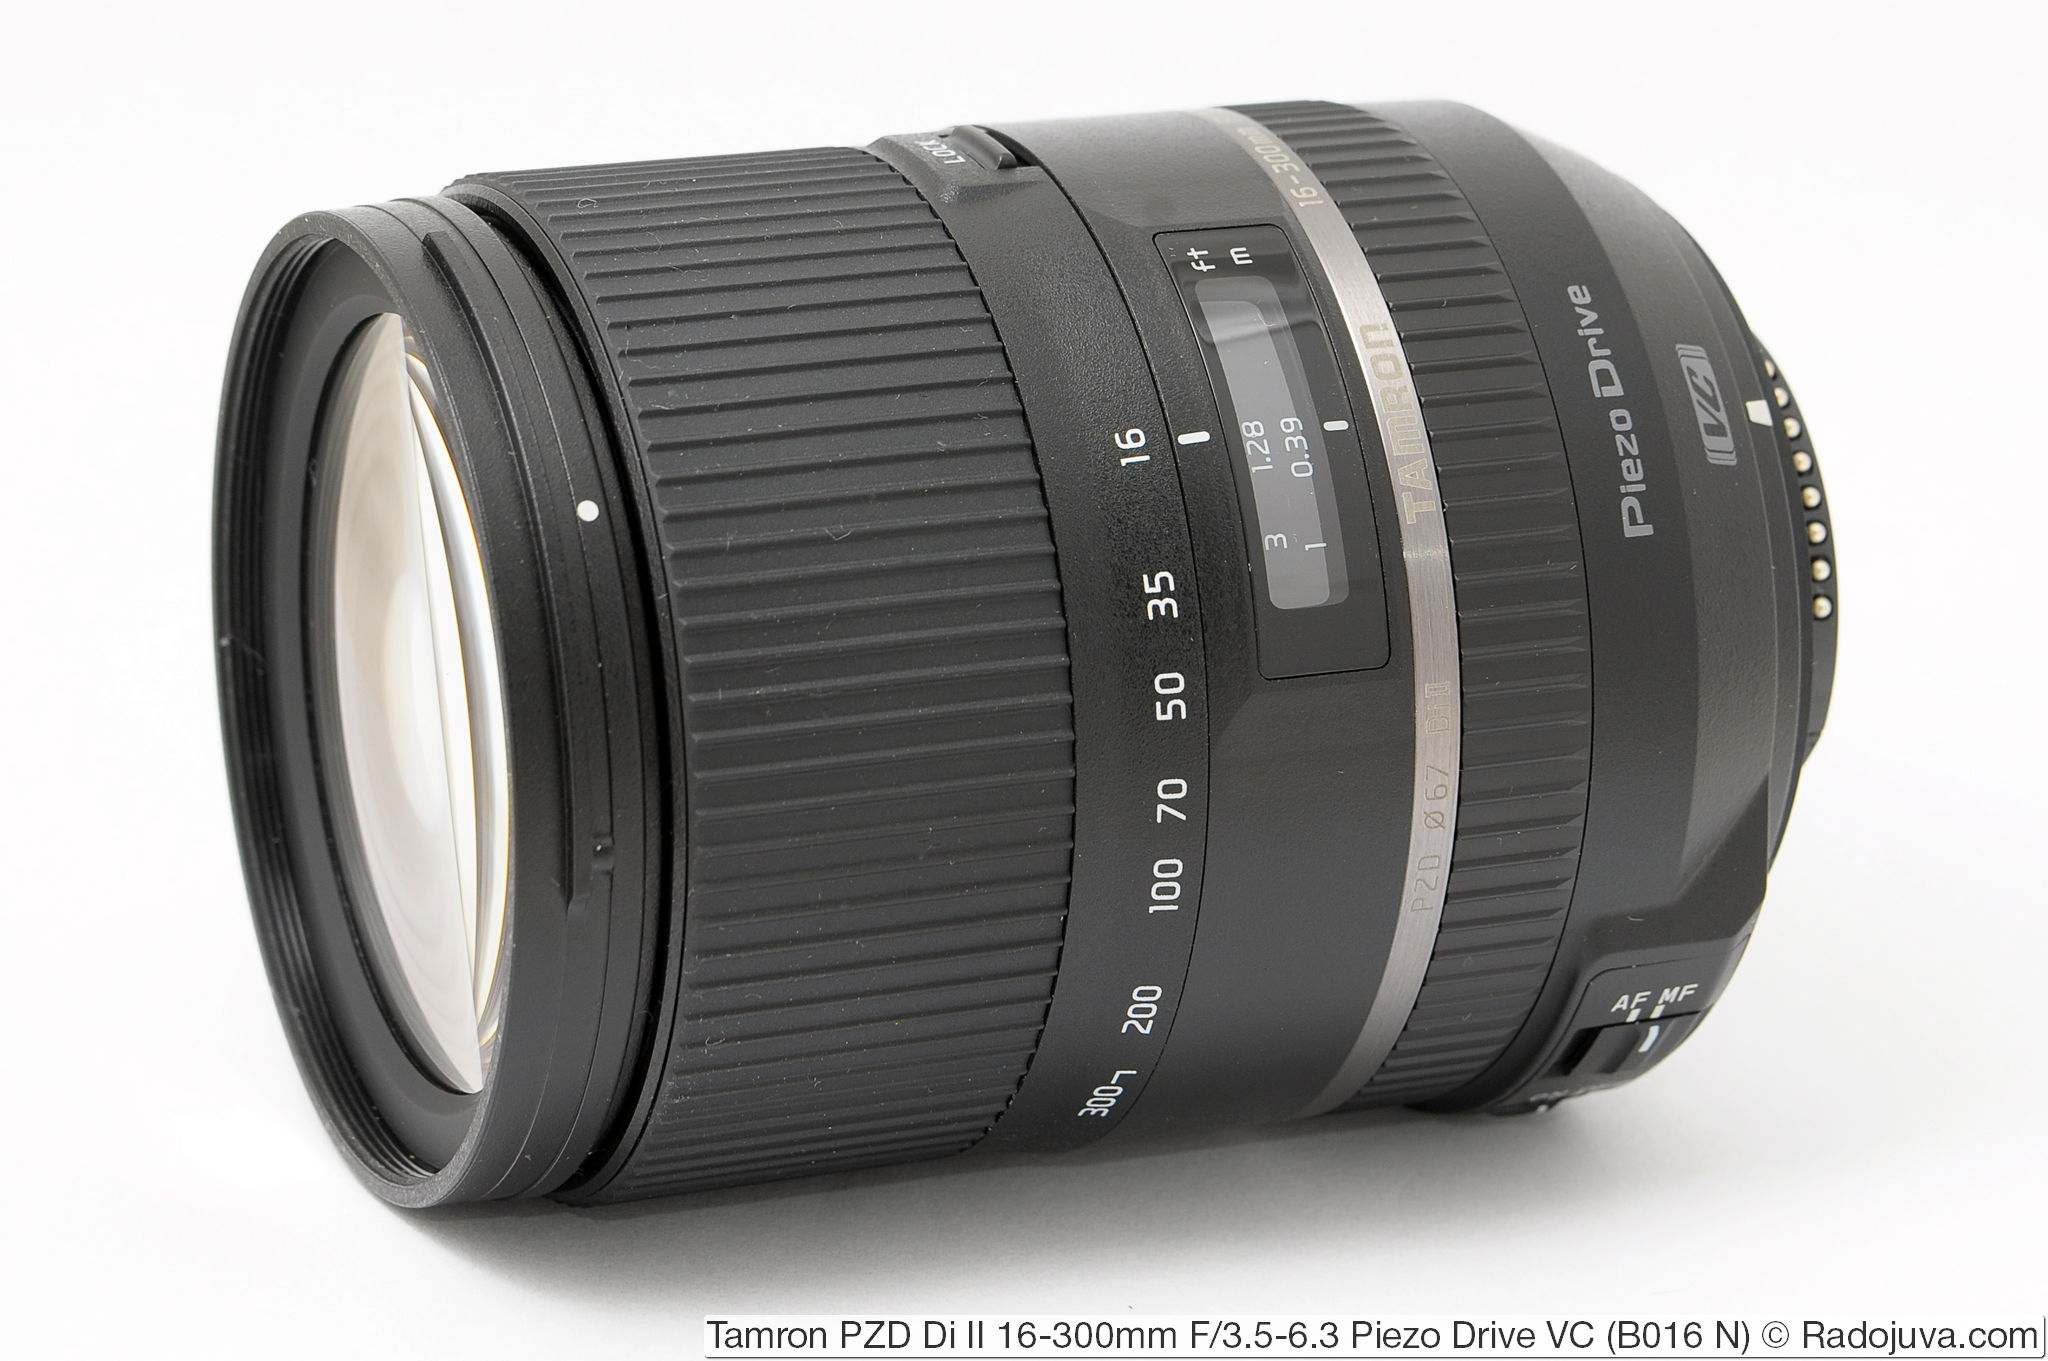 Tamron 16-300mm F/3.5-6.3 Di II PZD VC Model B016